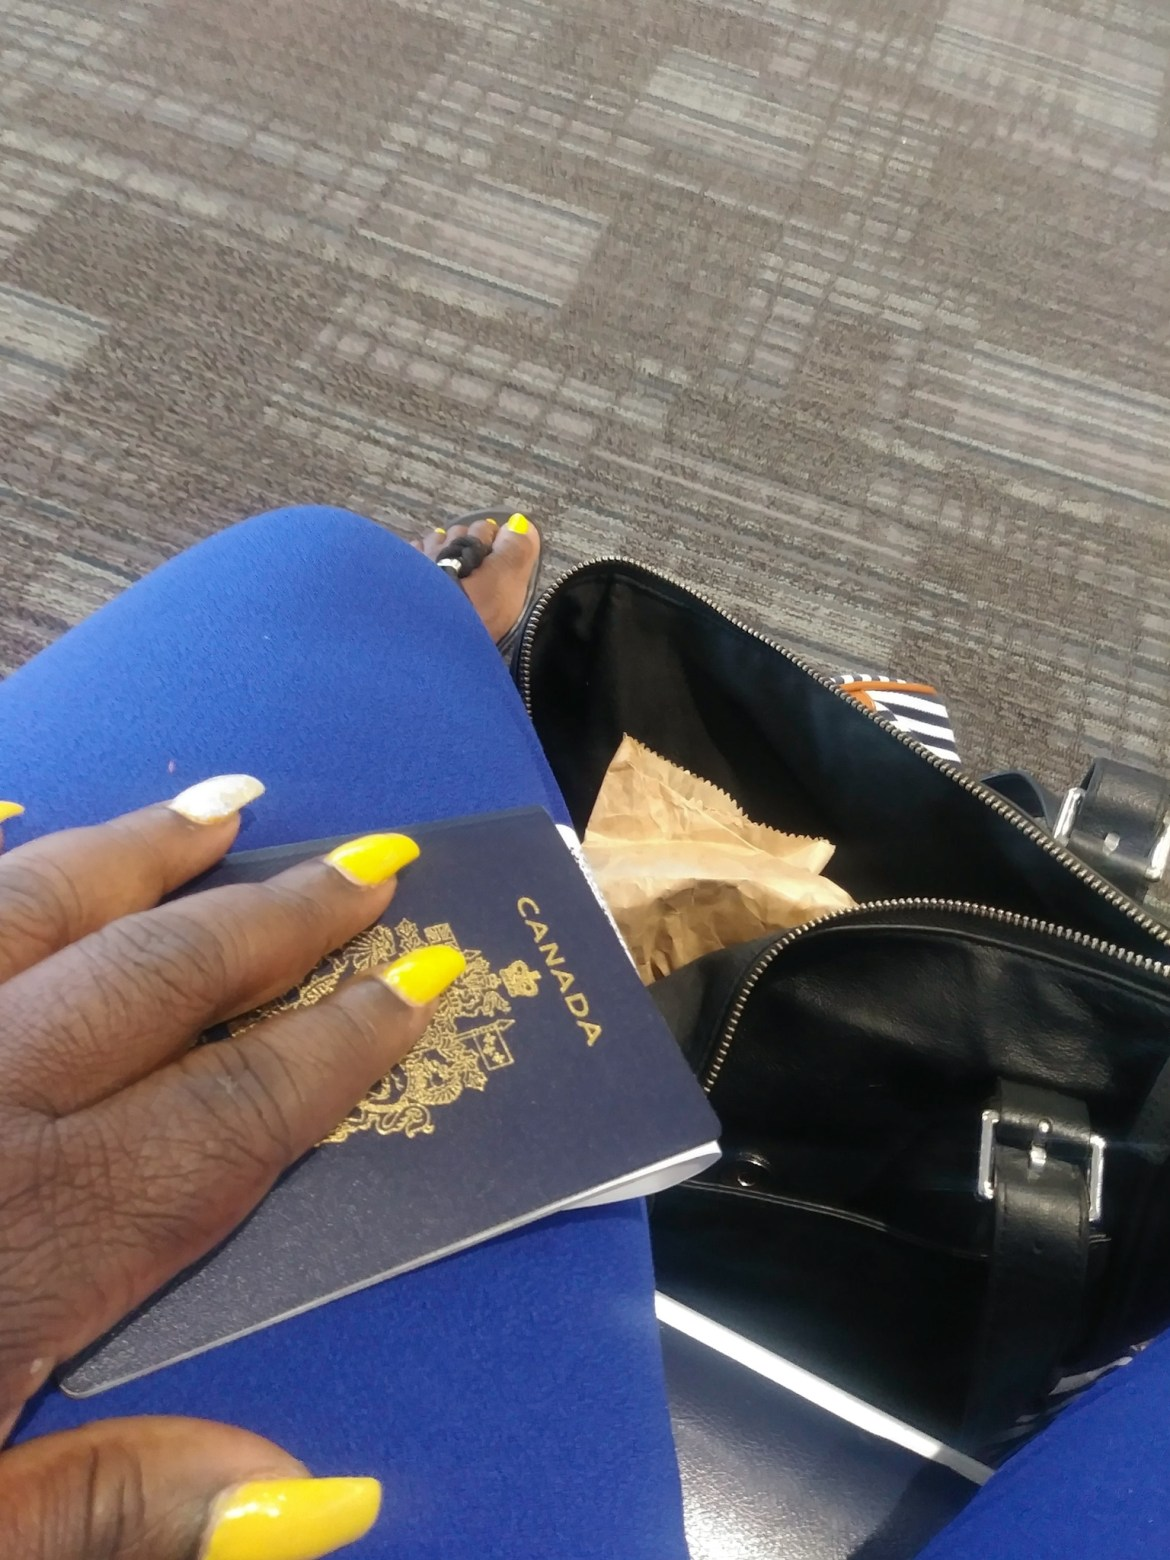 Holding a passport with yellow nails on a blue backround